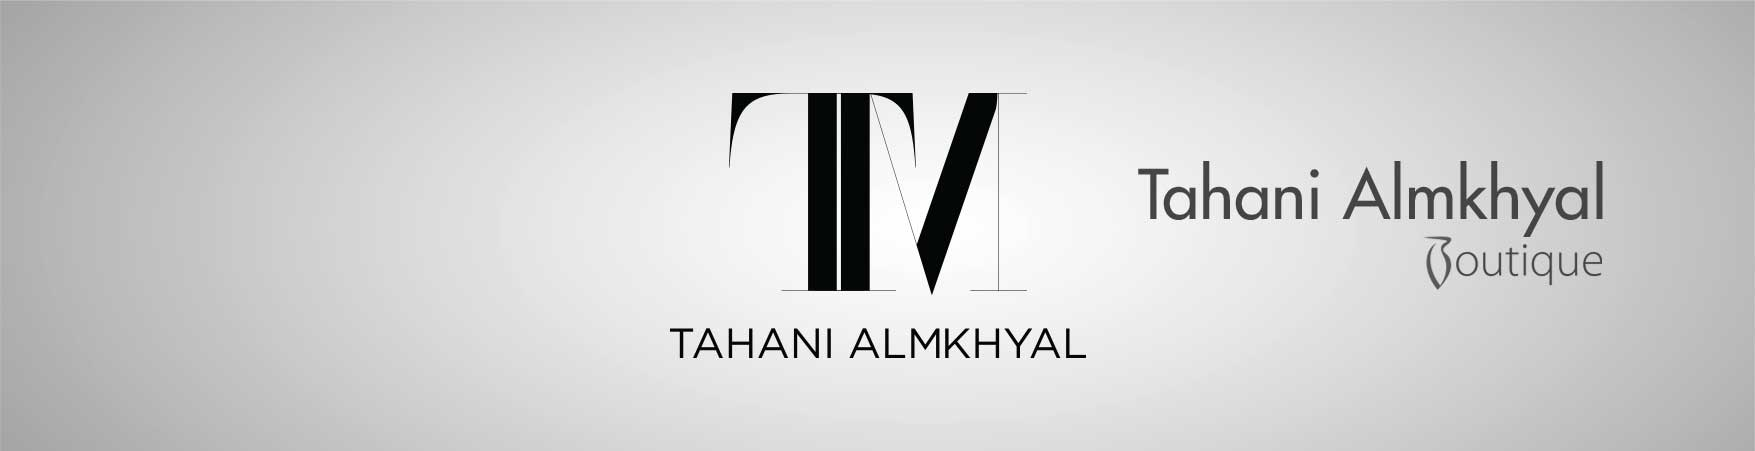 Tahani Almkhyal boutique